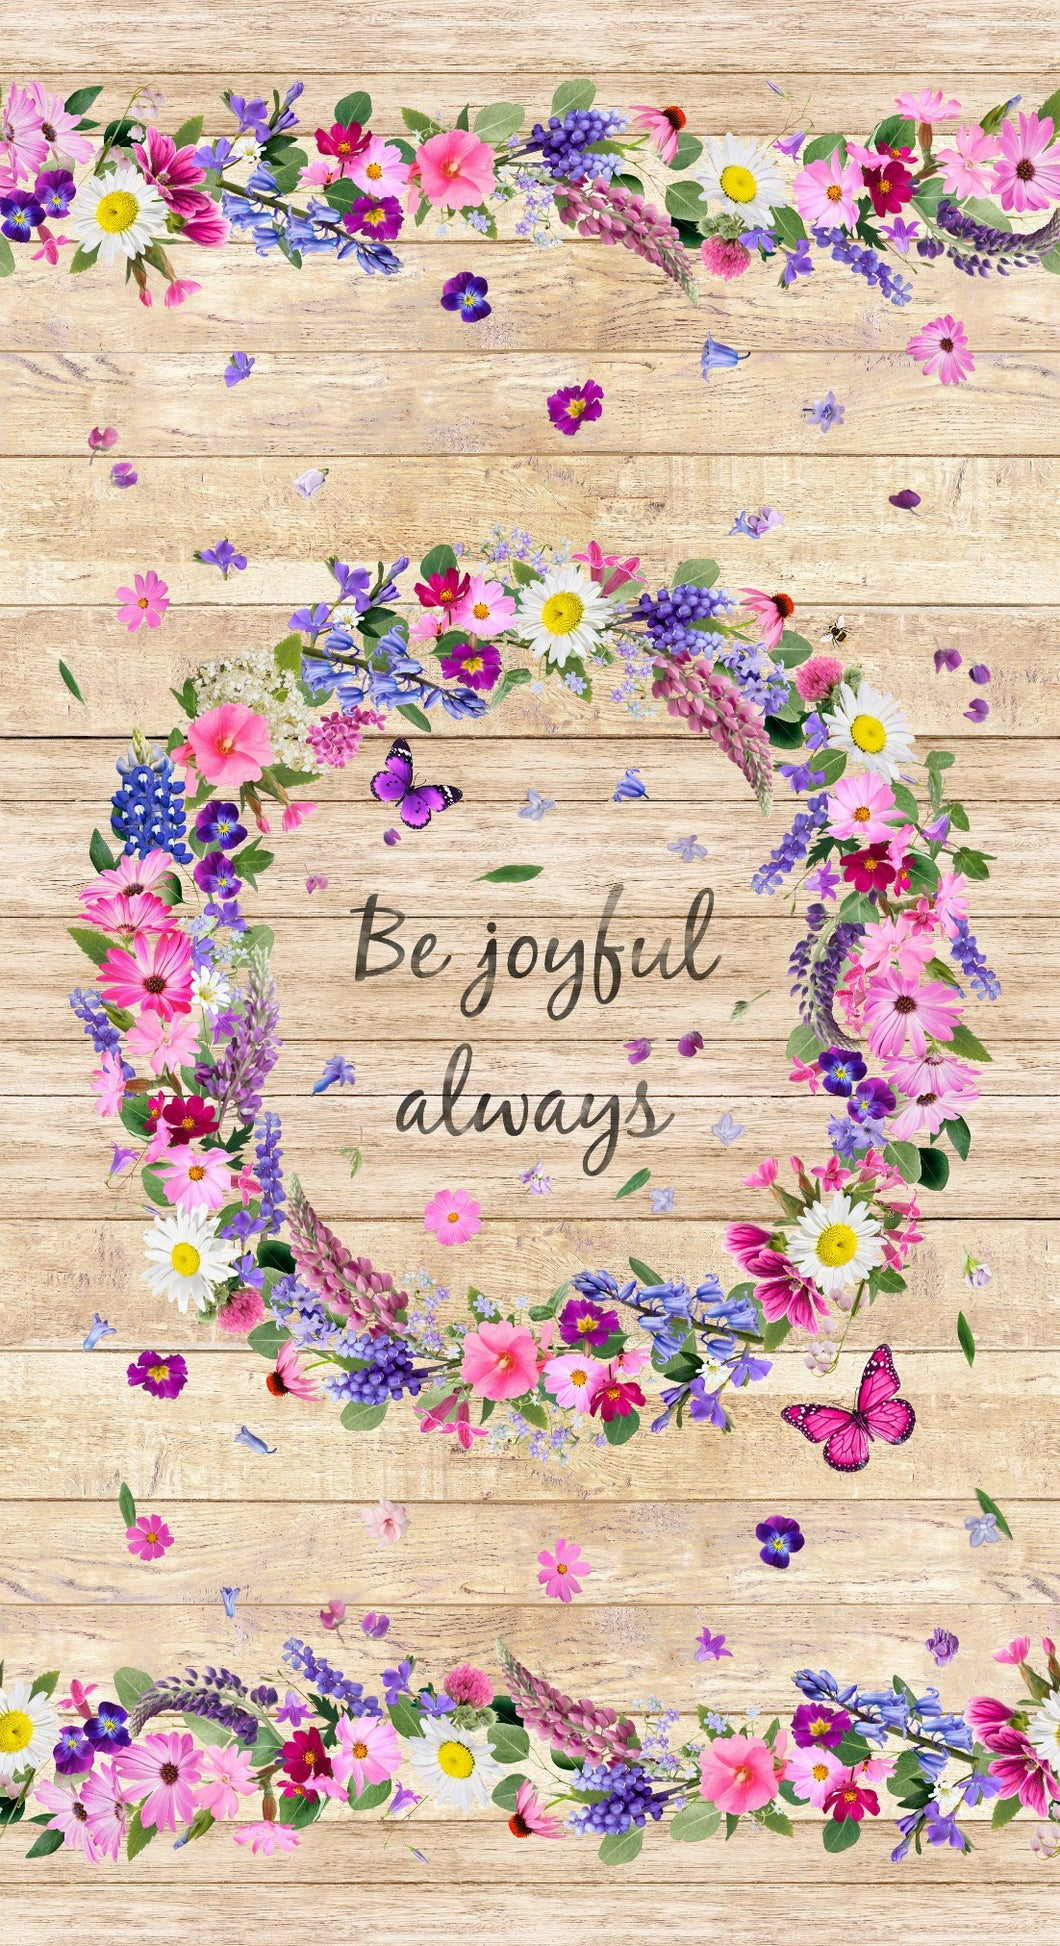 Be Joyful Always Floral Wreath Rustic Wood Shiplap Cotton Fabric Panel